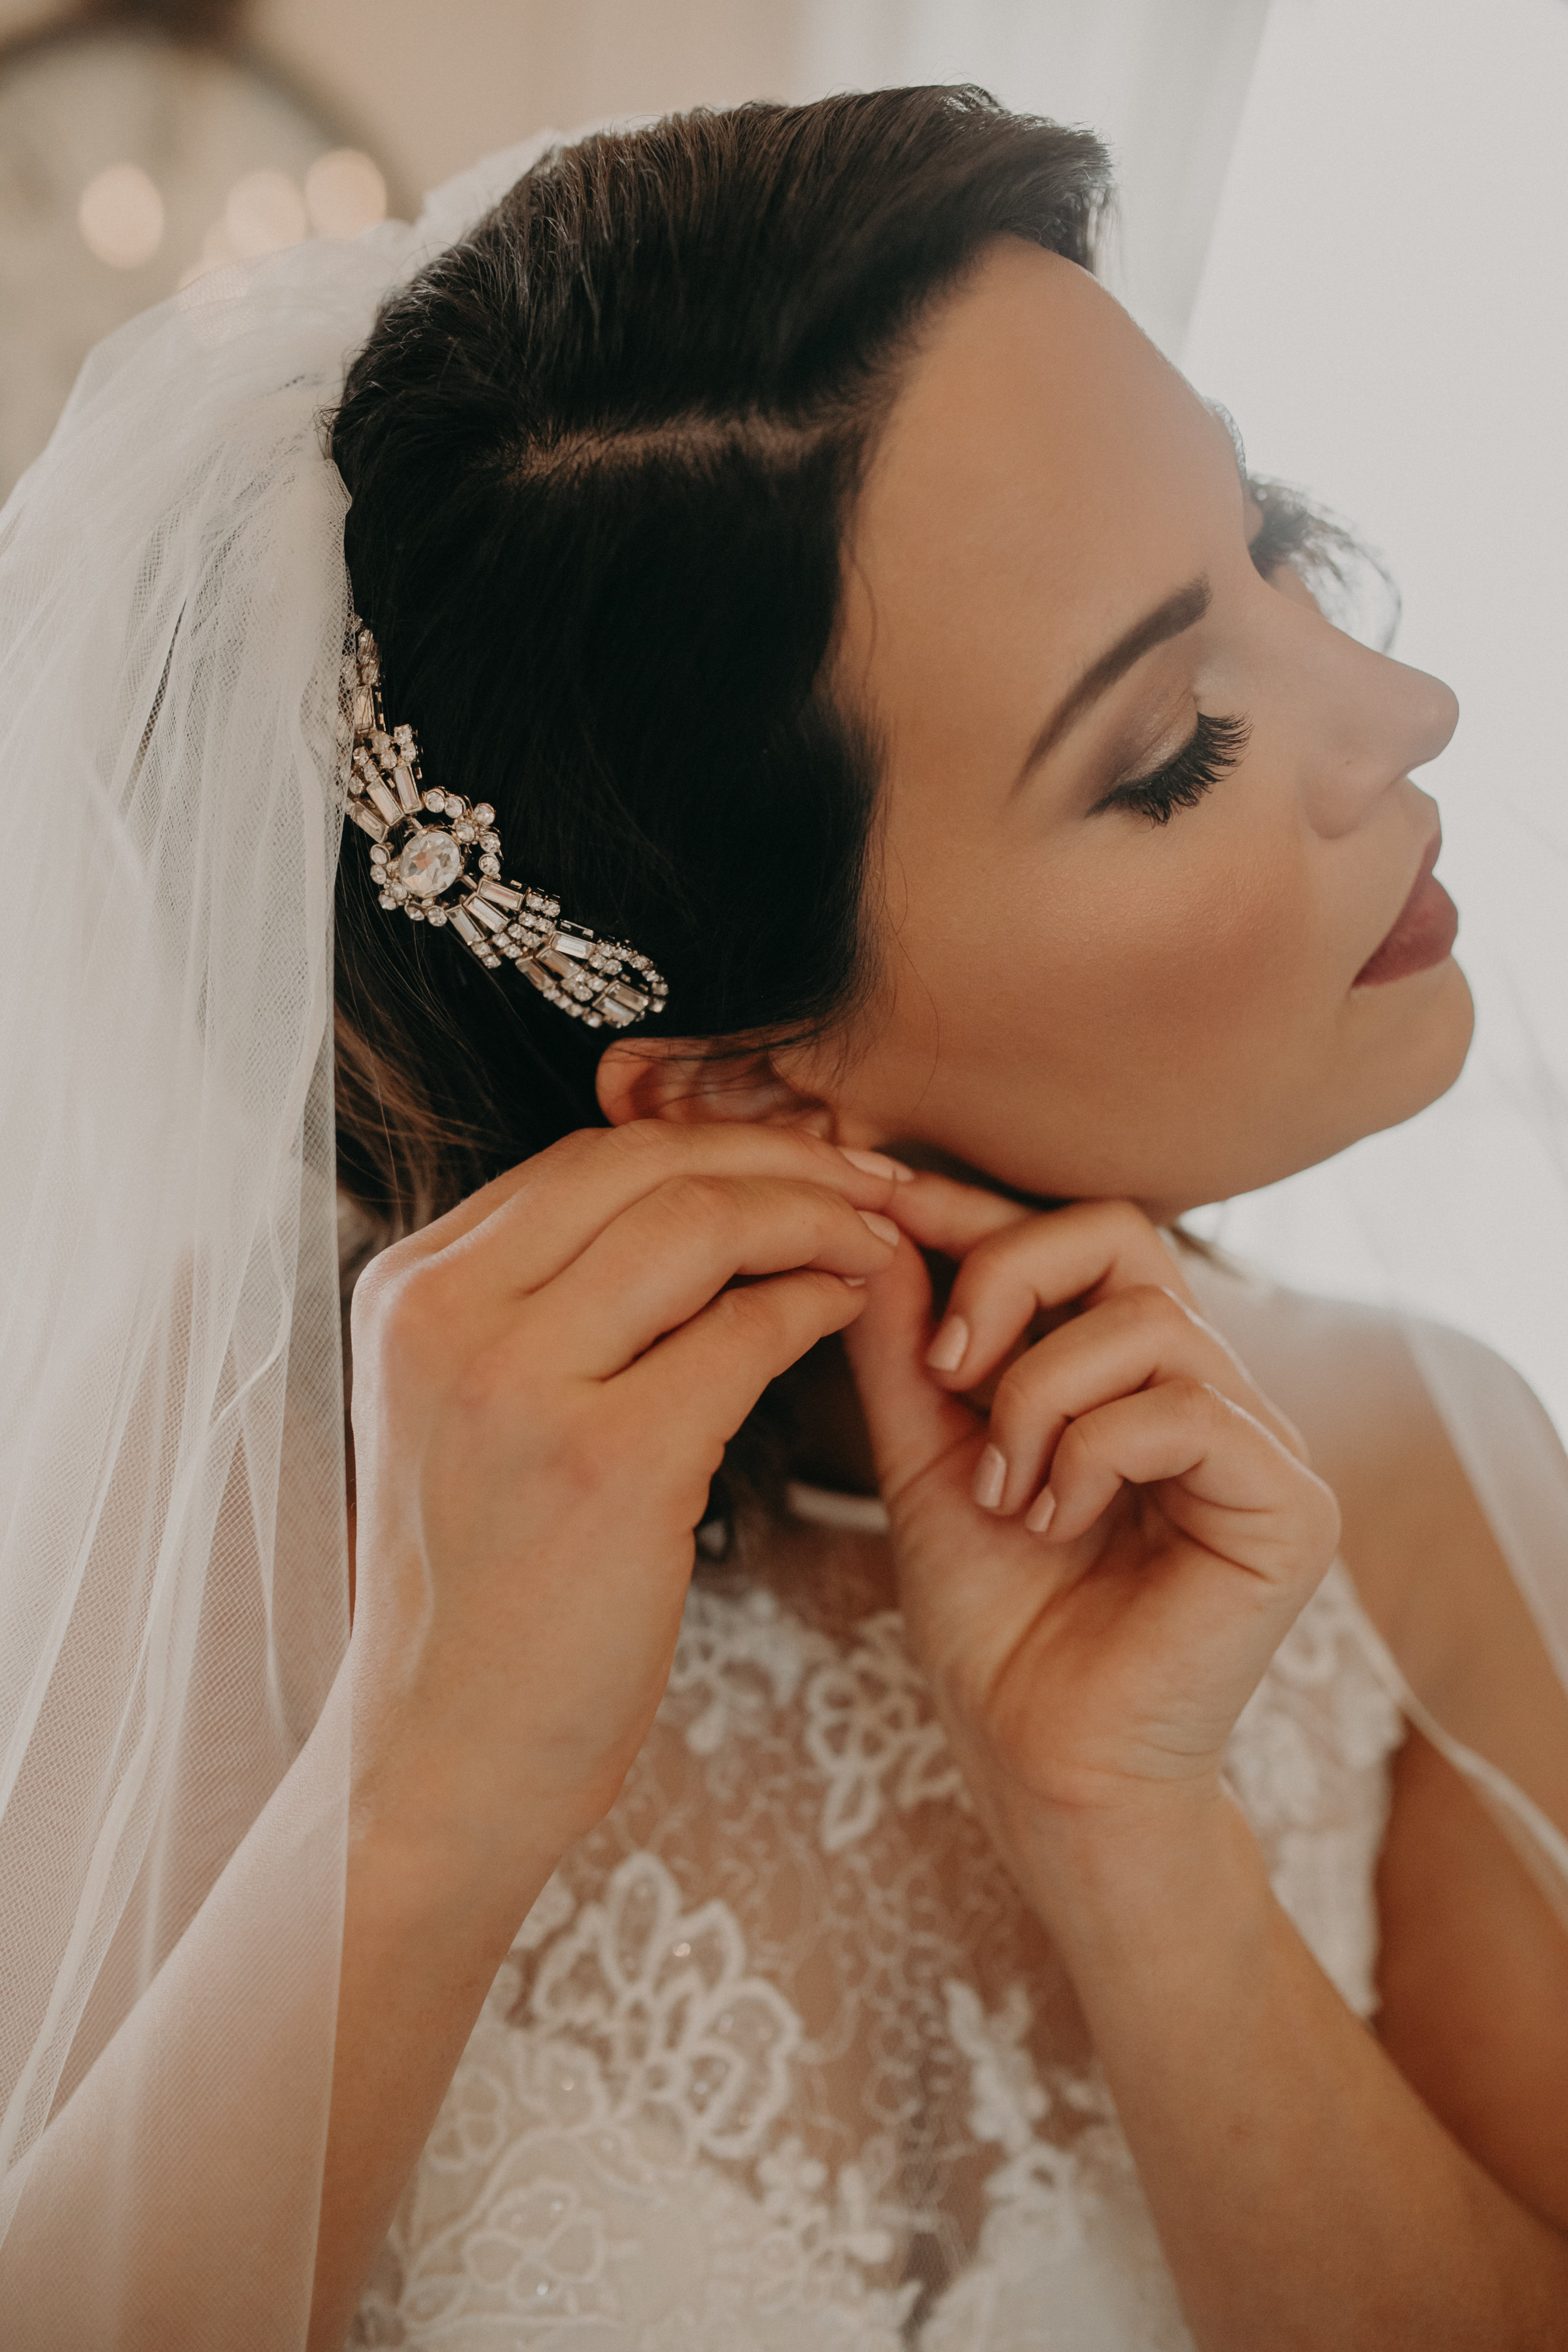 a bride puts on her earrings before her wedding in the getting ready space at The Loft at Studio J